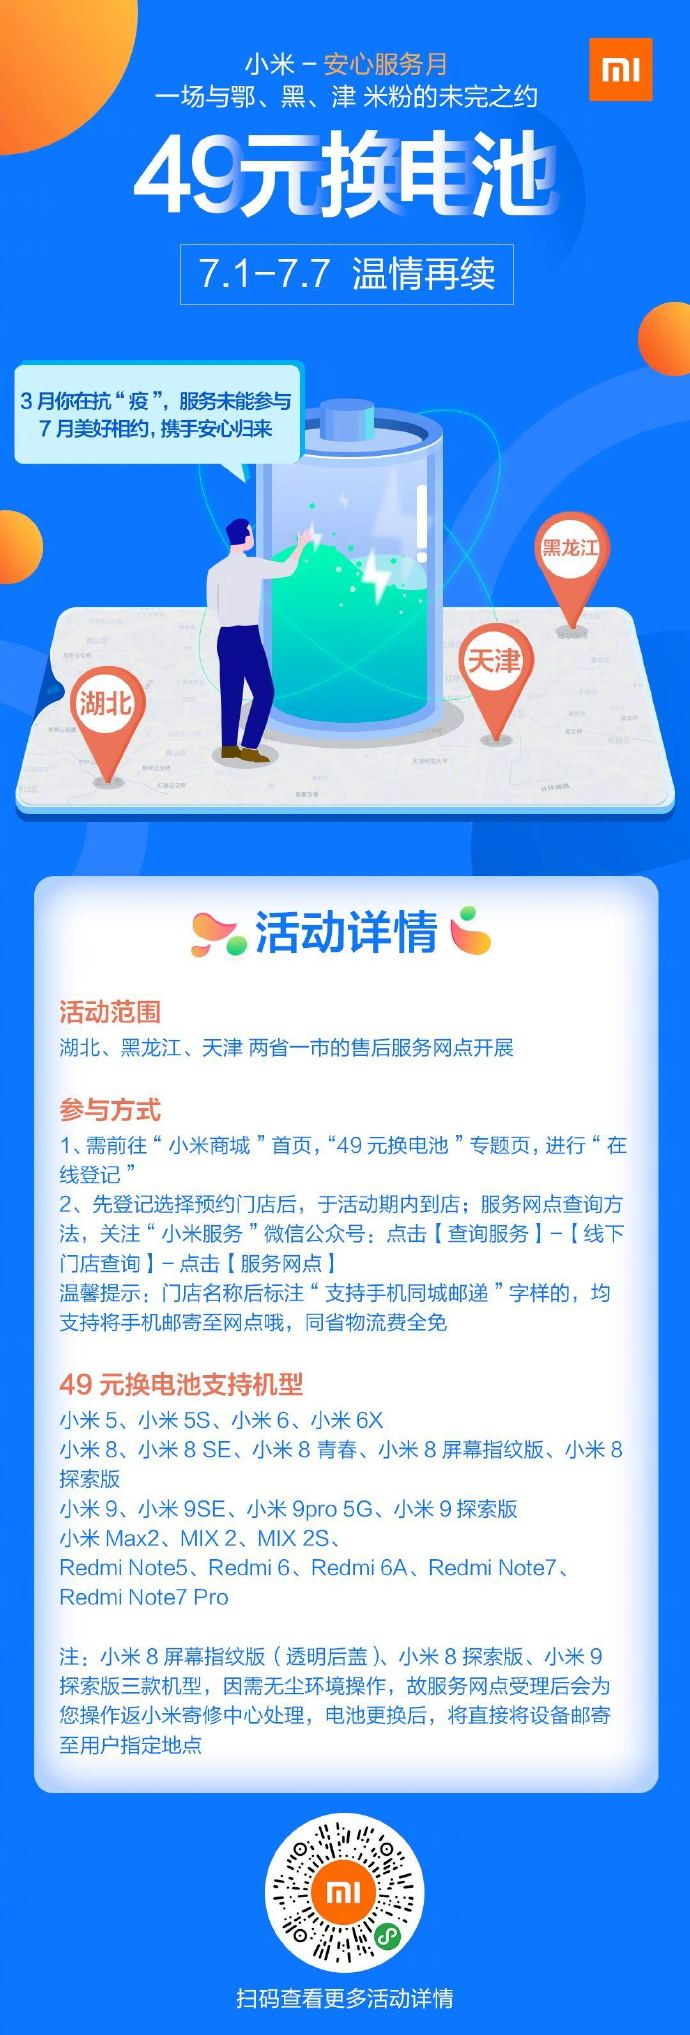 Battery replacement scheme. (Image source: Weibo)